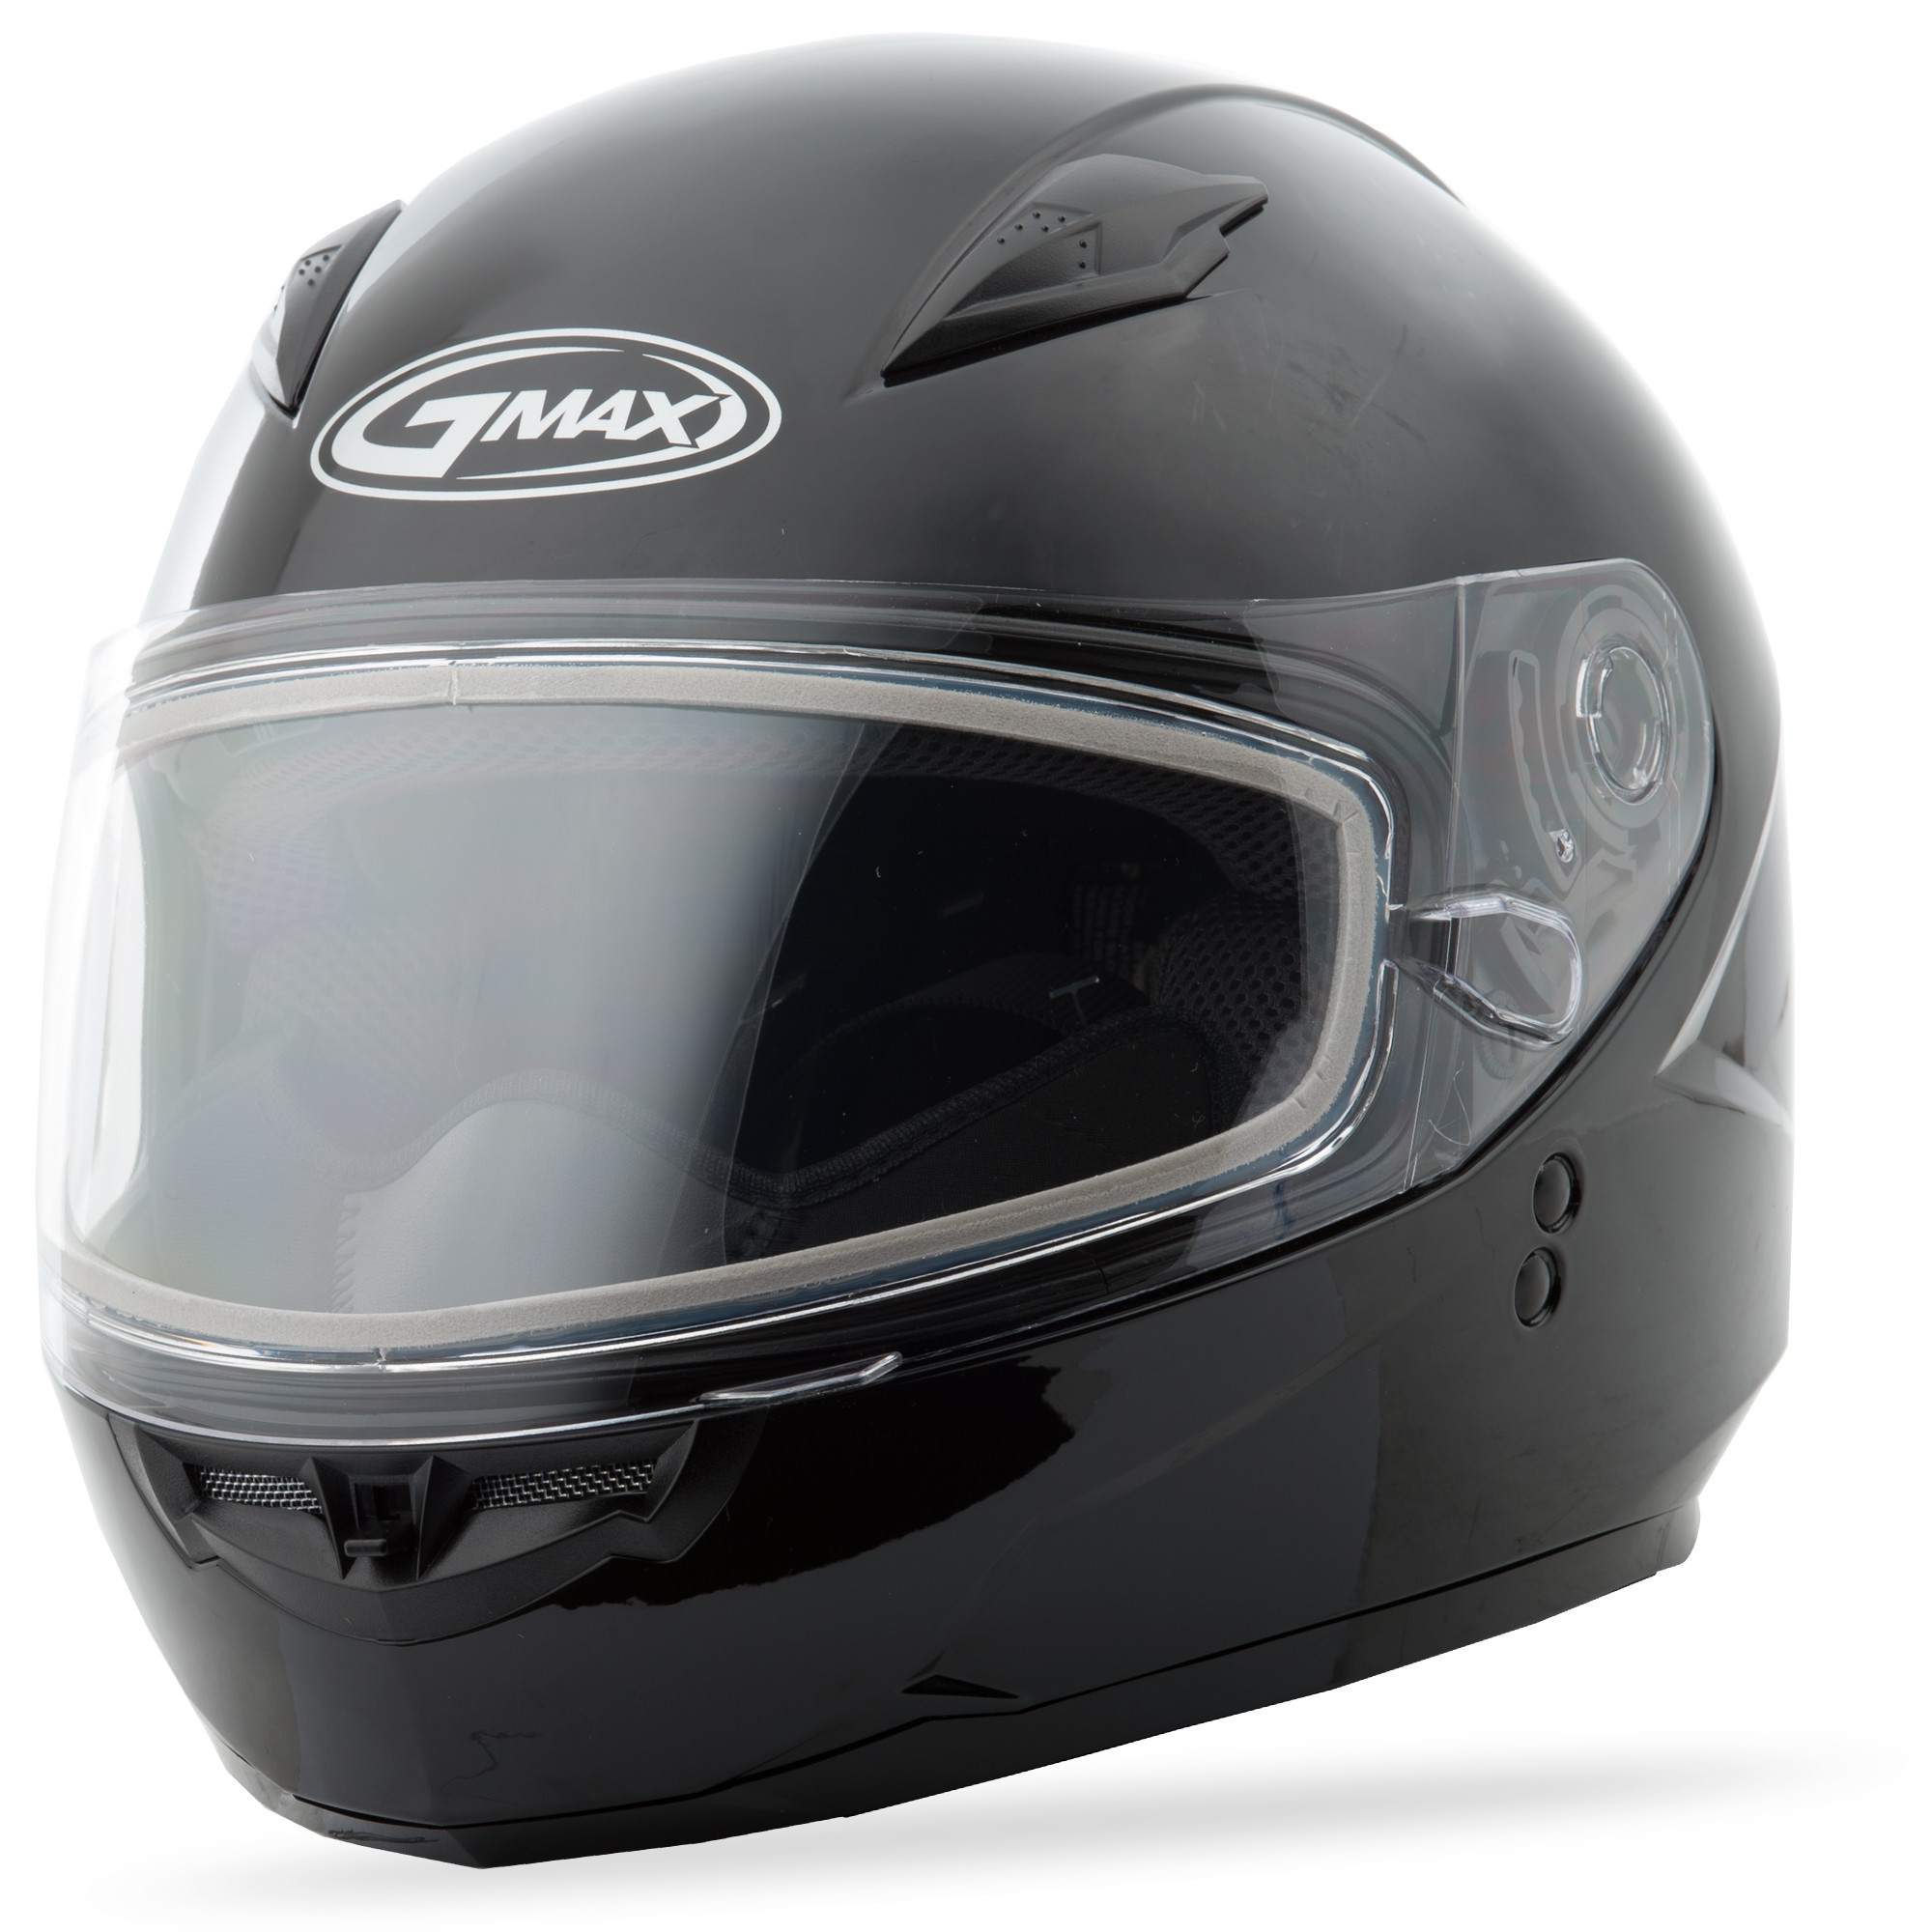 YOUTH GM-49Y Full-Face Snow,  Helmet BLACK 72-5970YL